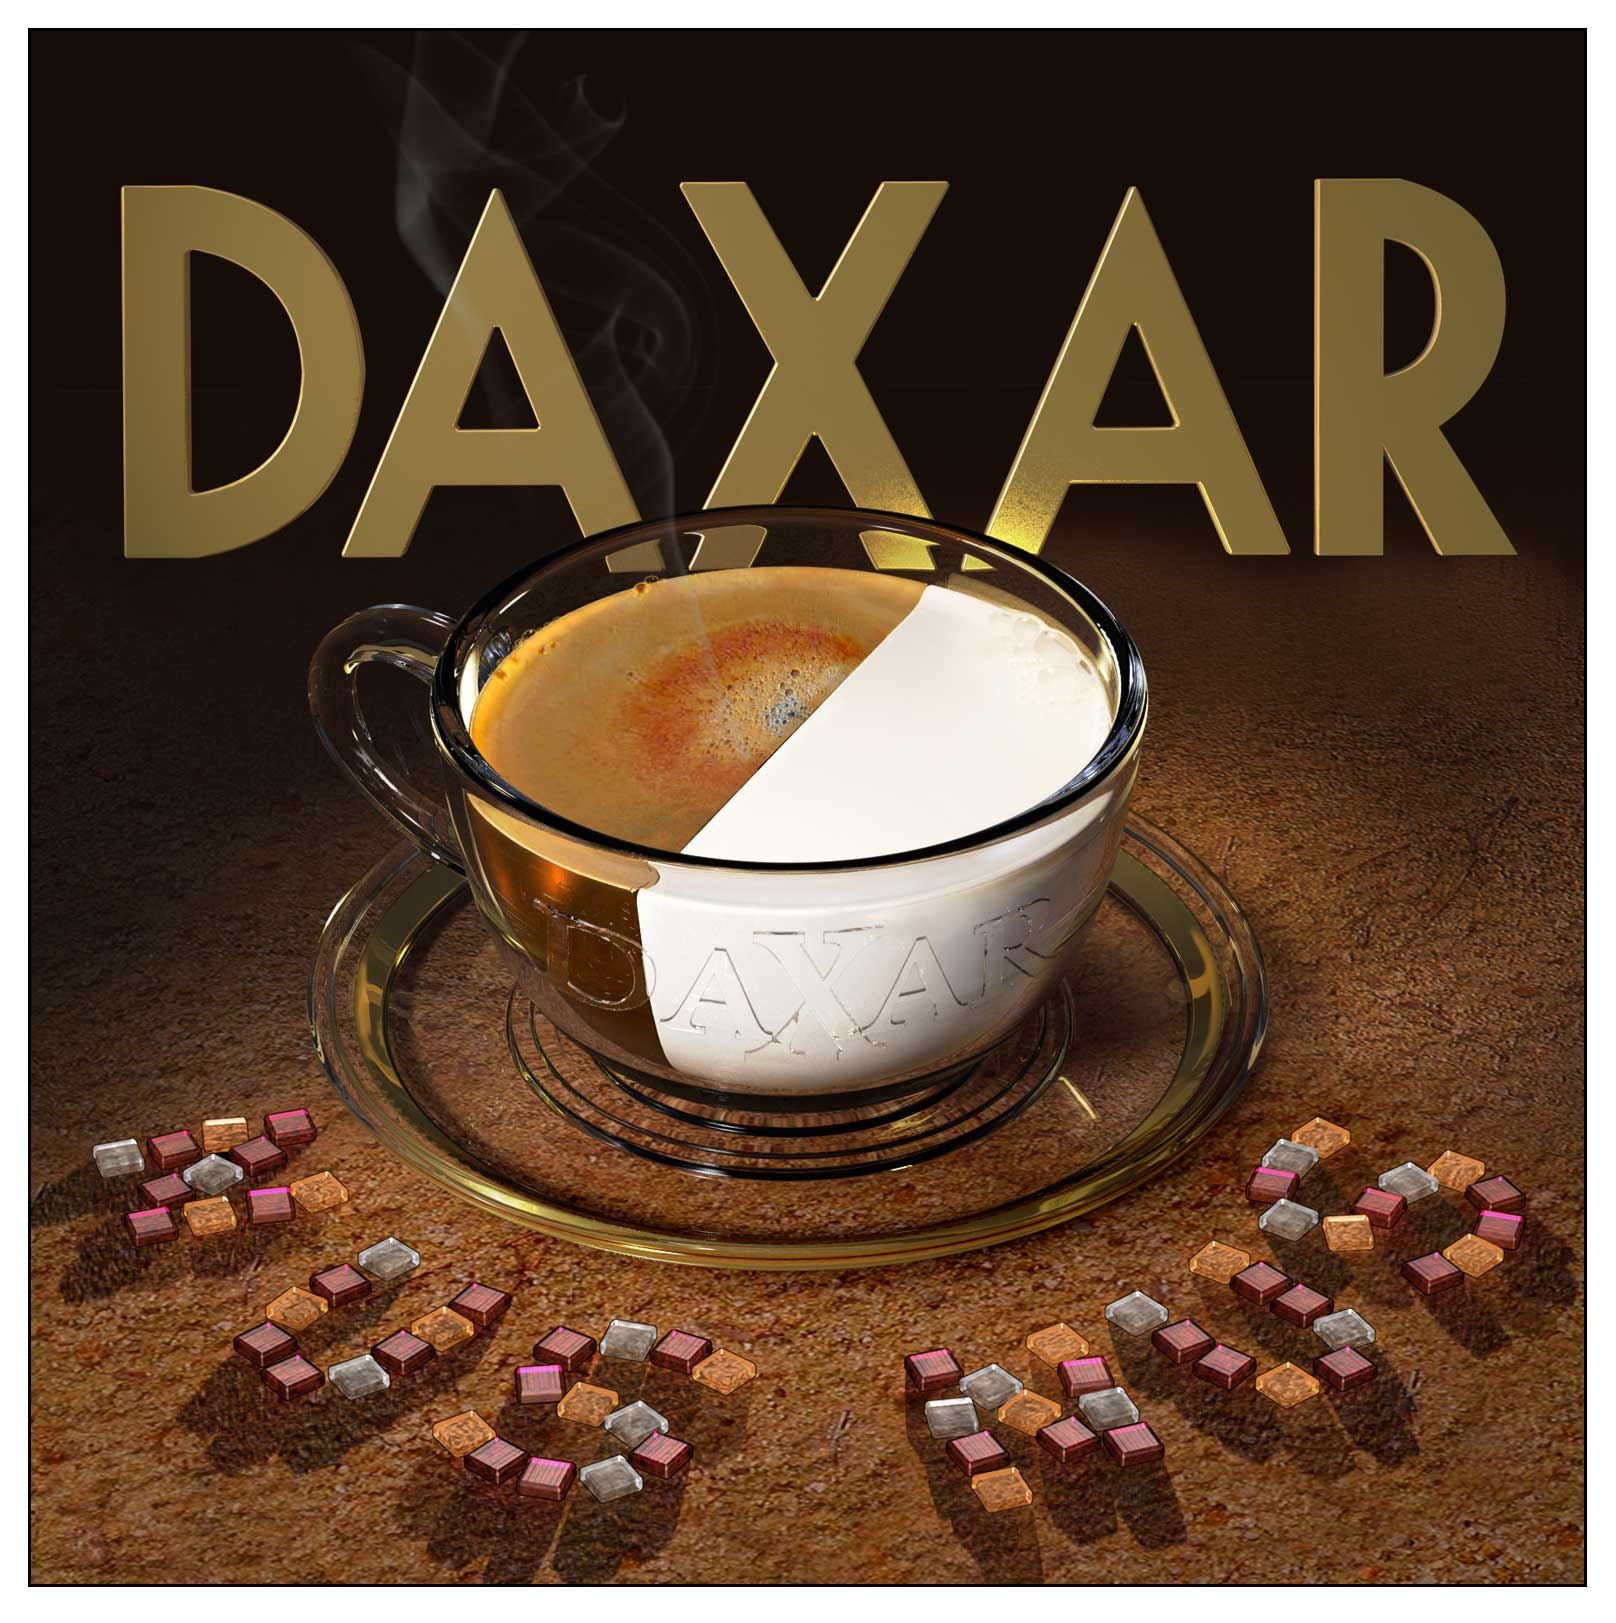 Daxar-band-cover